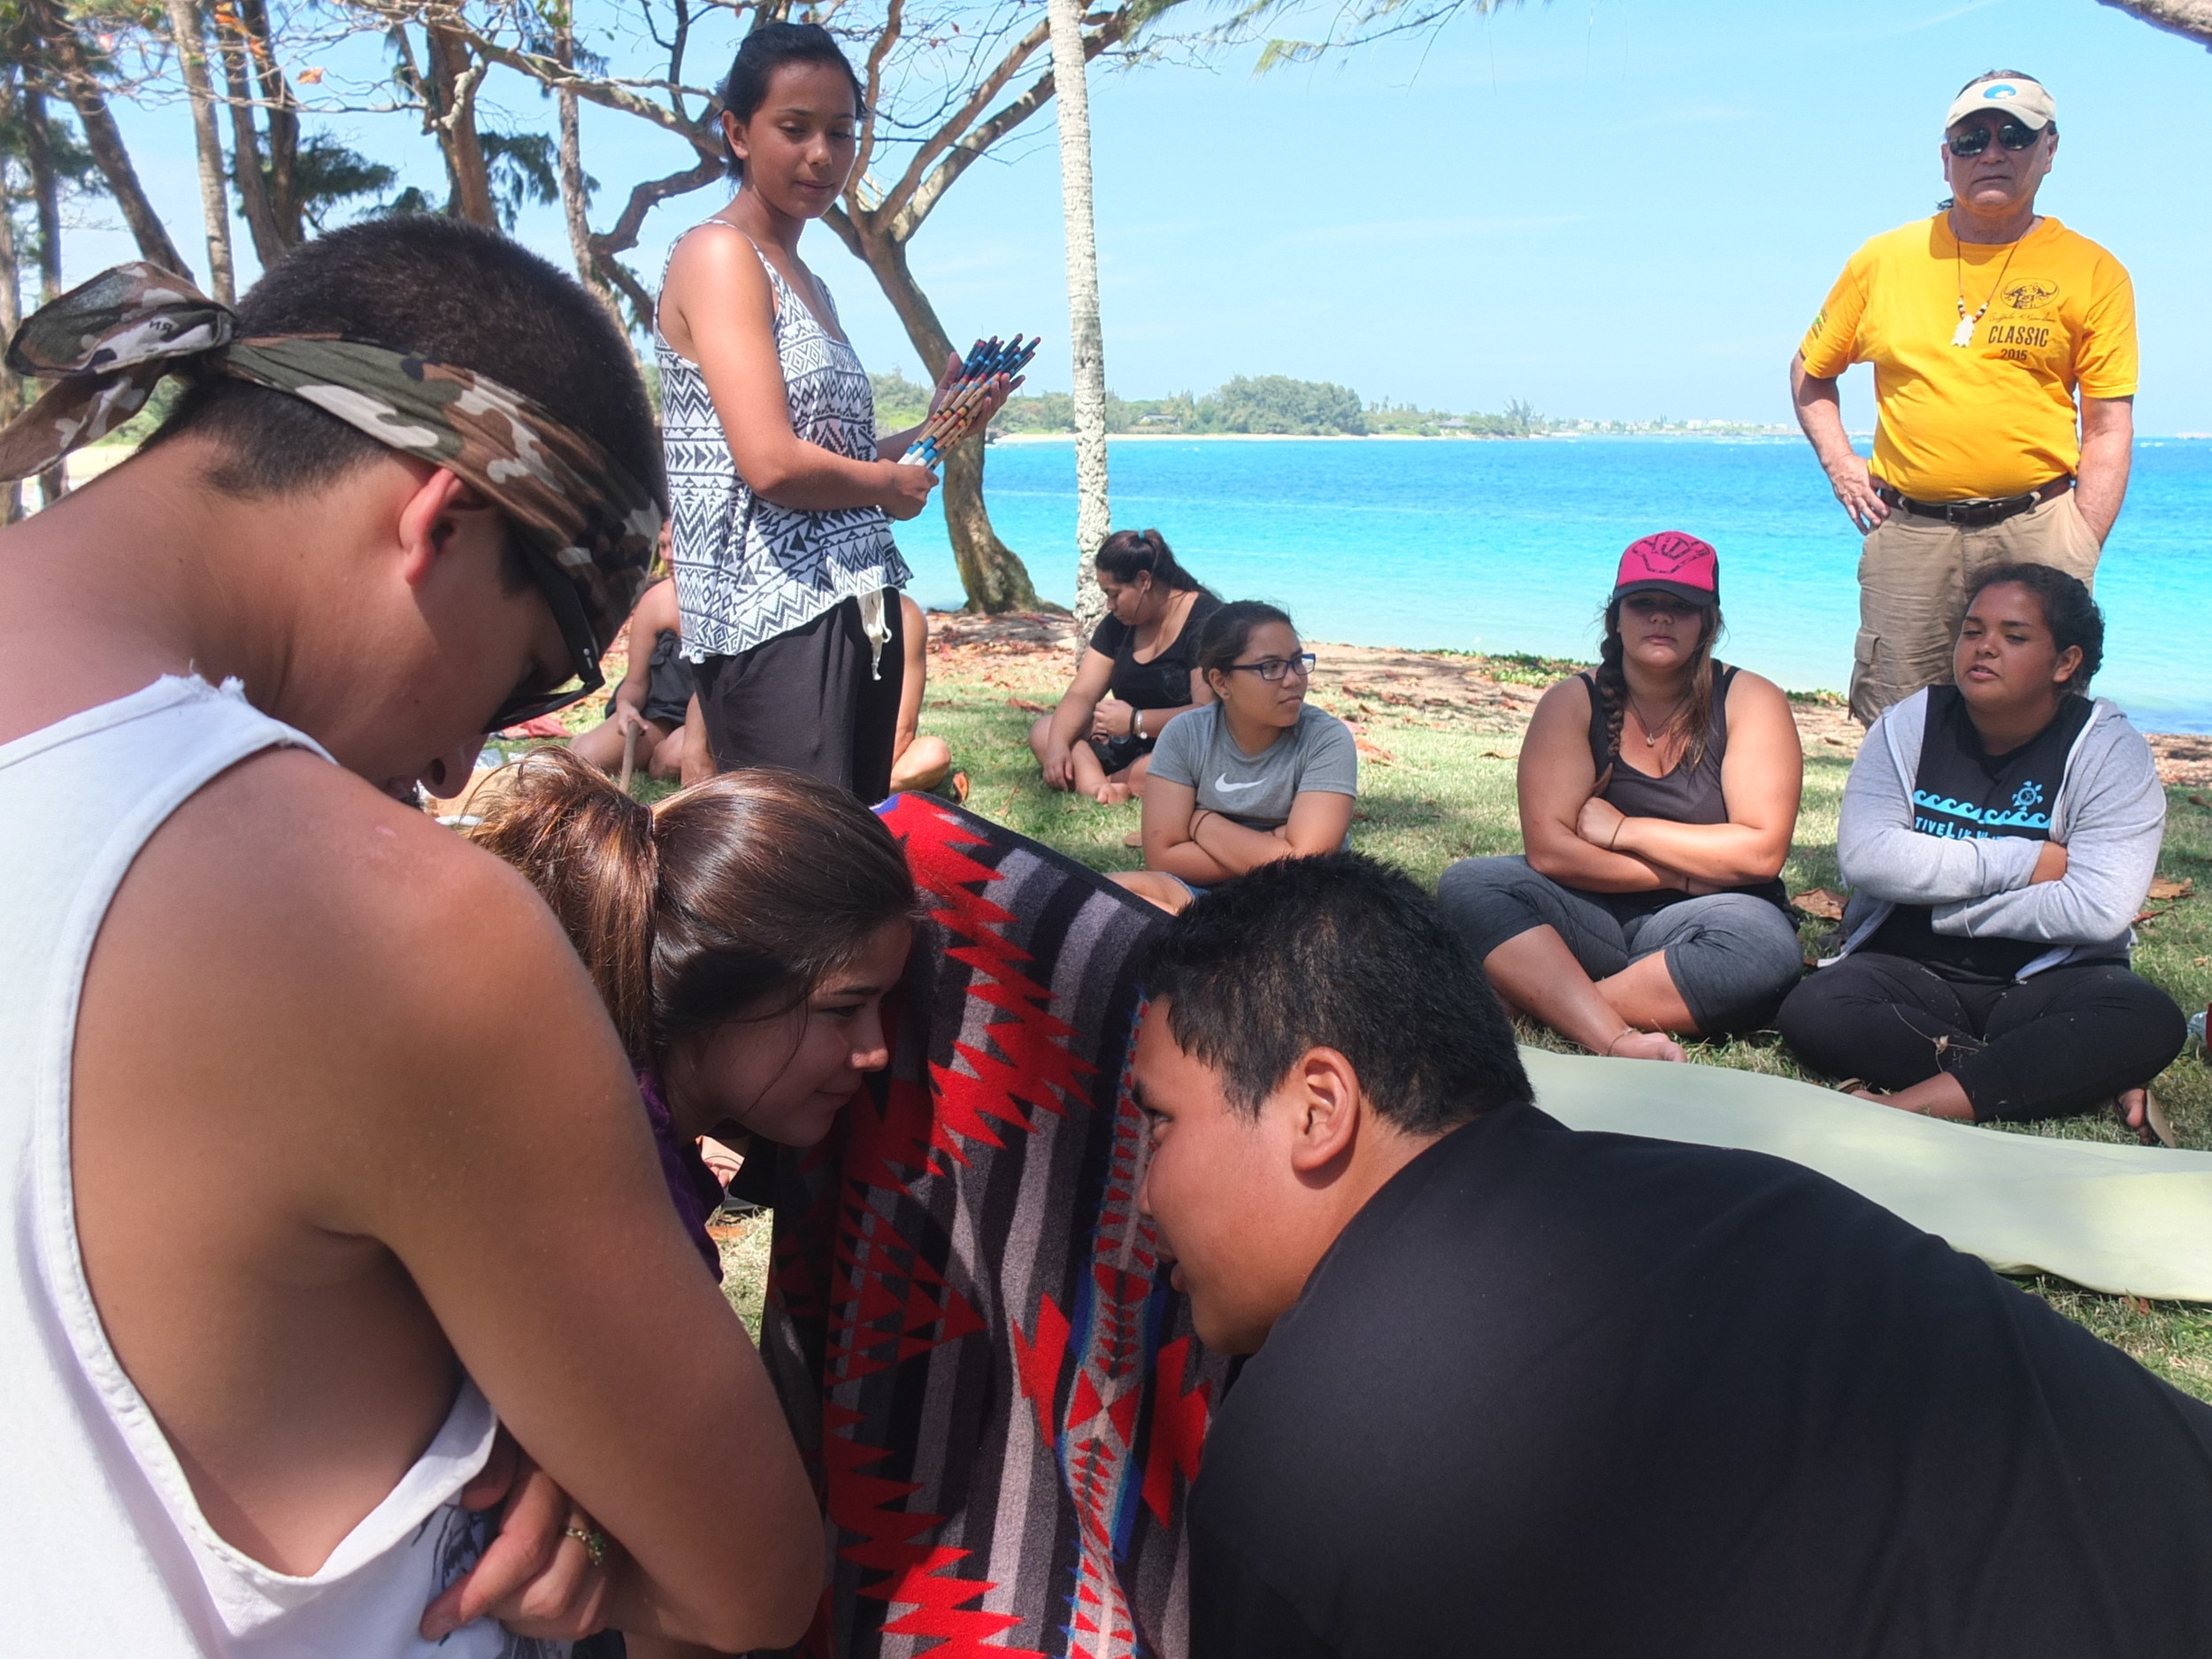 """Southern California Youth share traditional Games with Na kama kai. """"Peon"""" is a traditional gambling game which takes skill, intuition and strategy. Normally played at night around campfire and accompanied by song. Traditional Gaming Curriculum Courtesy of Sycuan Institute of Tribal Gaming (SITG) at San Diego State U."""